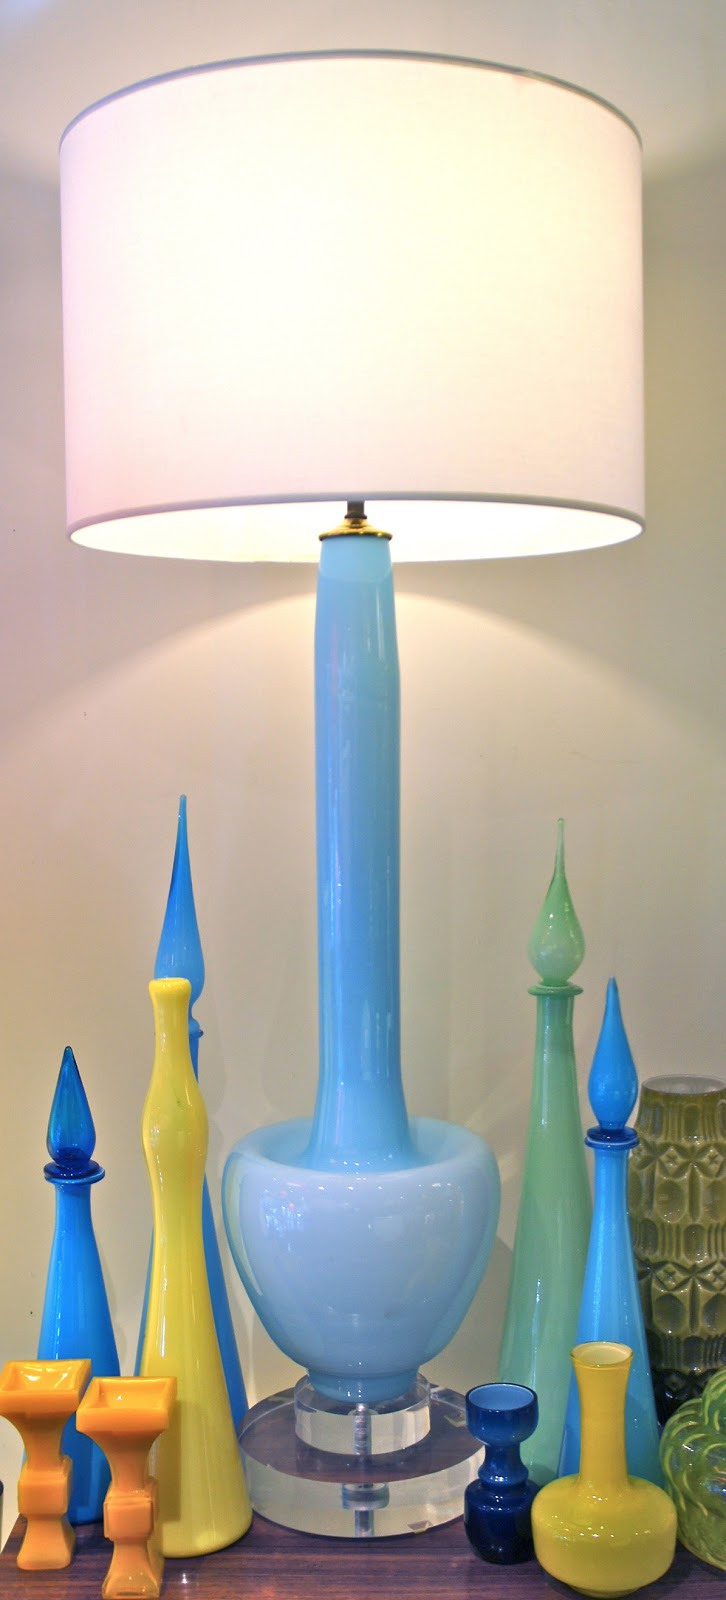 1000 Images About DECO Amp DESIGN On Pinterest Lamps Brass And